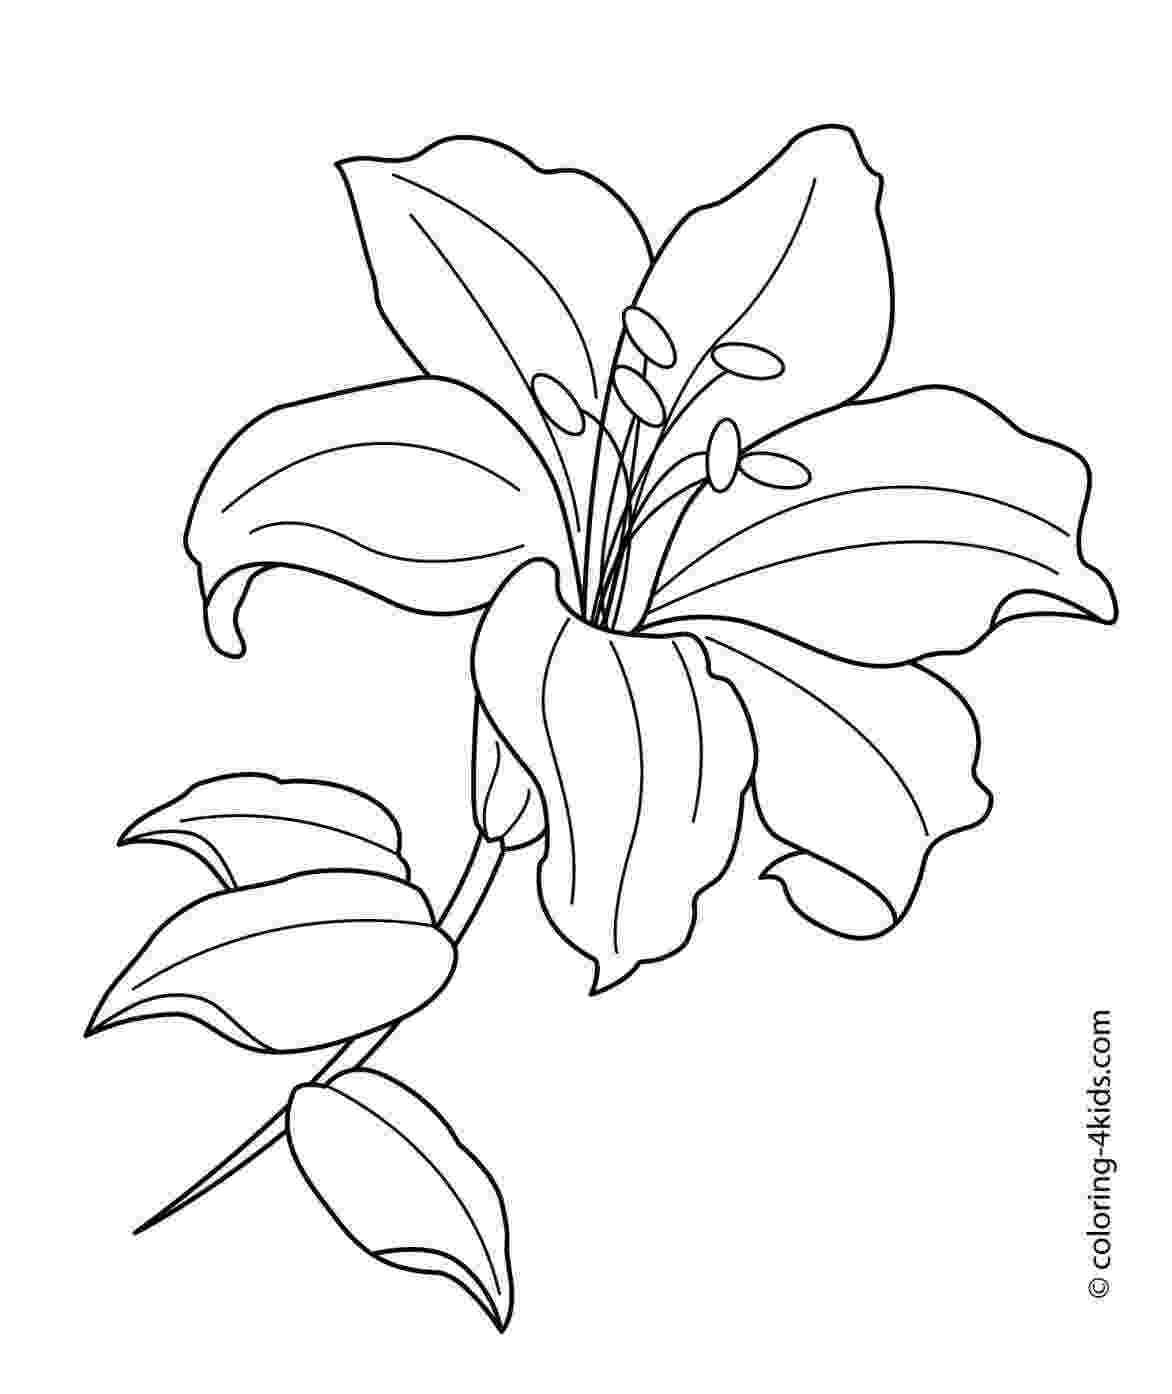 lily flower coloring pages lily flower coloring pages download and print lily flower lily flower coloring pages